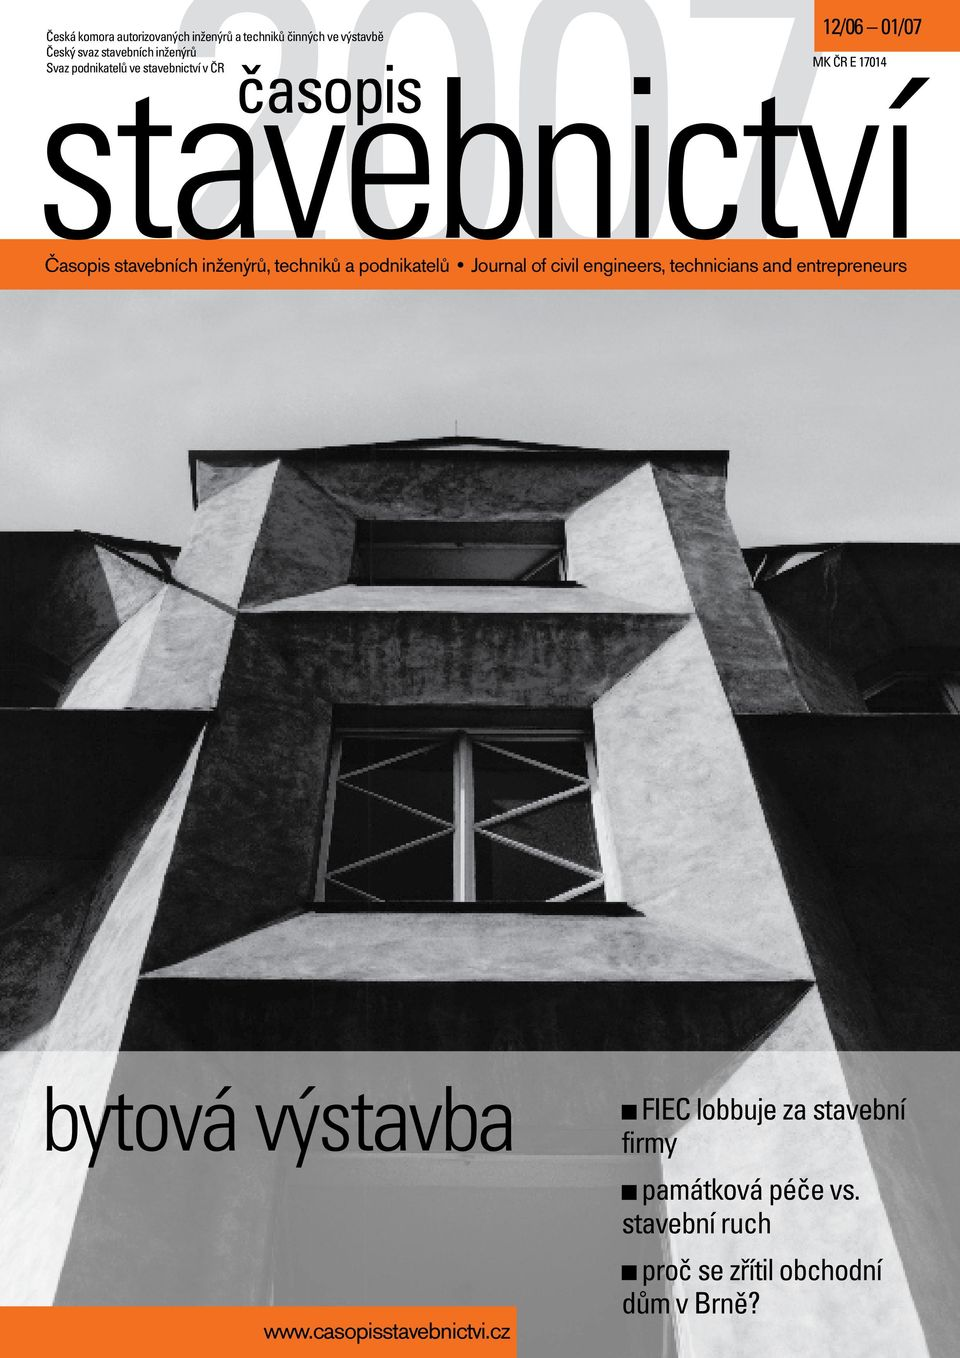 a podnikatelů Journal of civil engineers, technicians and entrepreneurs bytová výstavba FIEC lobbuje za